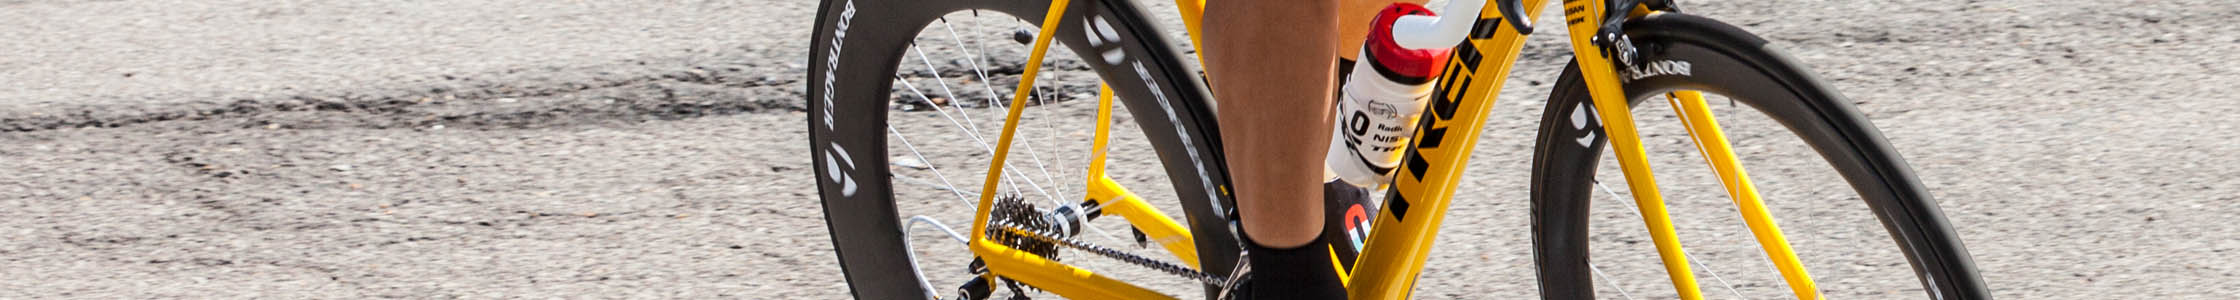 cycling-header-banner